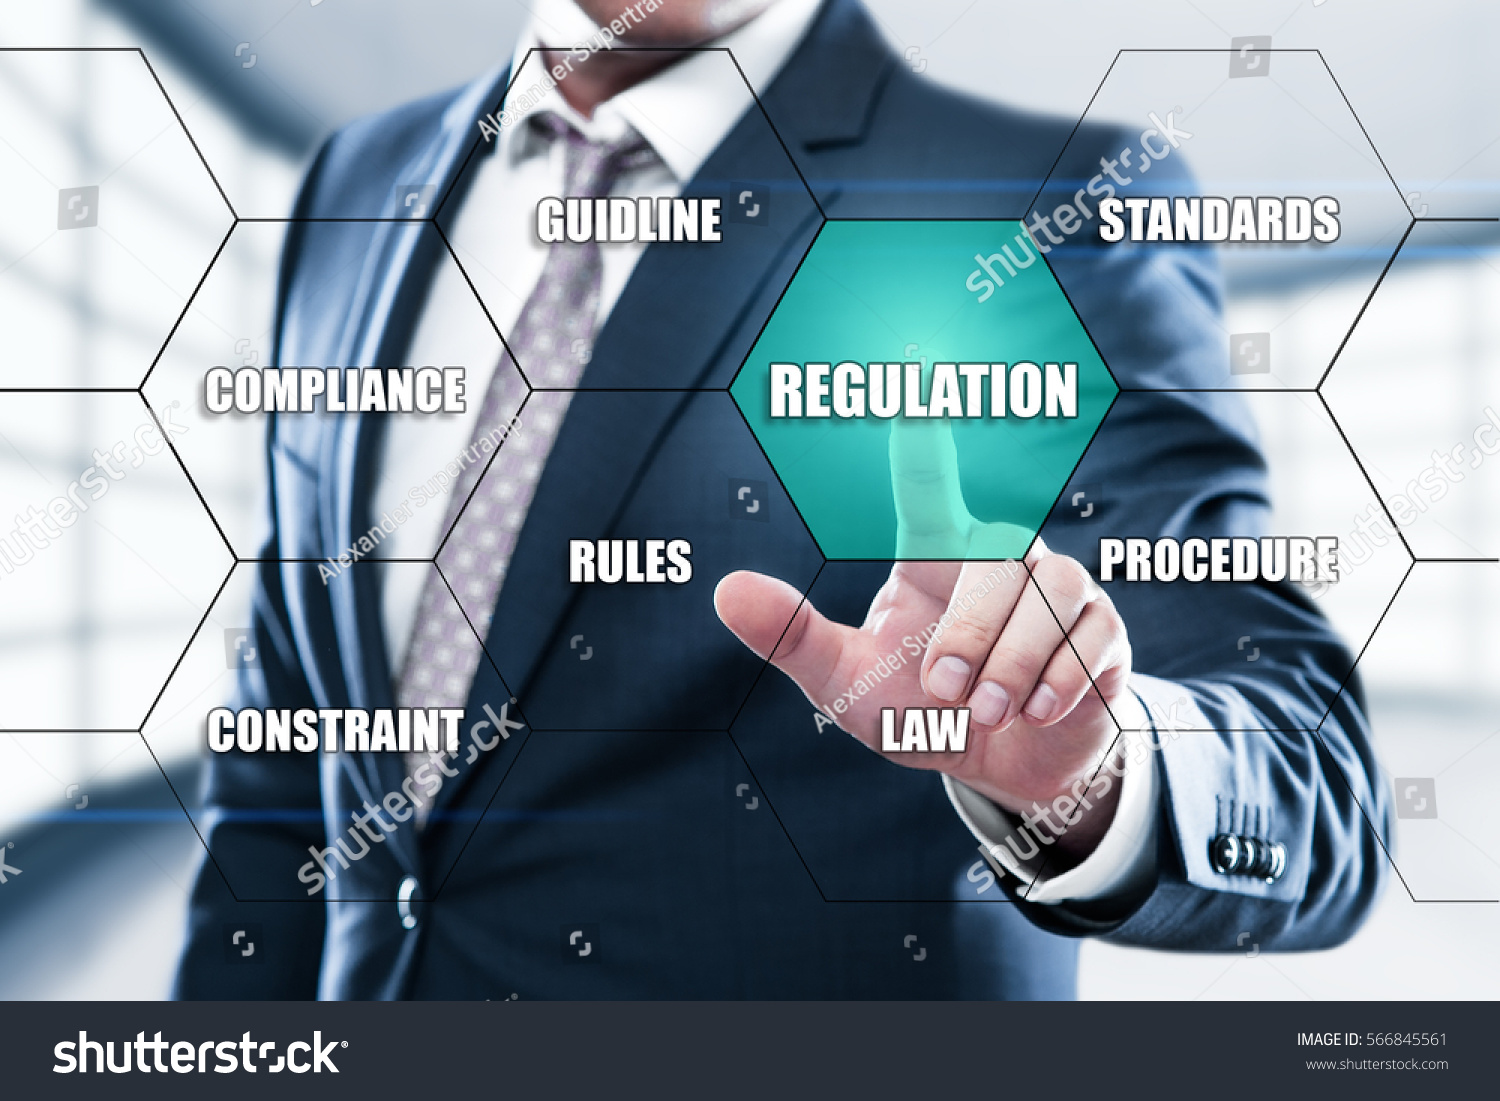 the concept of rule of law The rule of law is a basic concern in the creation of the constitution constitutional law can only be fully and effectively implemented when the laws of a country or region as a whole are respected by the citizenry and the government.